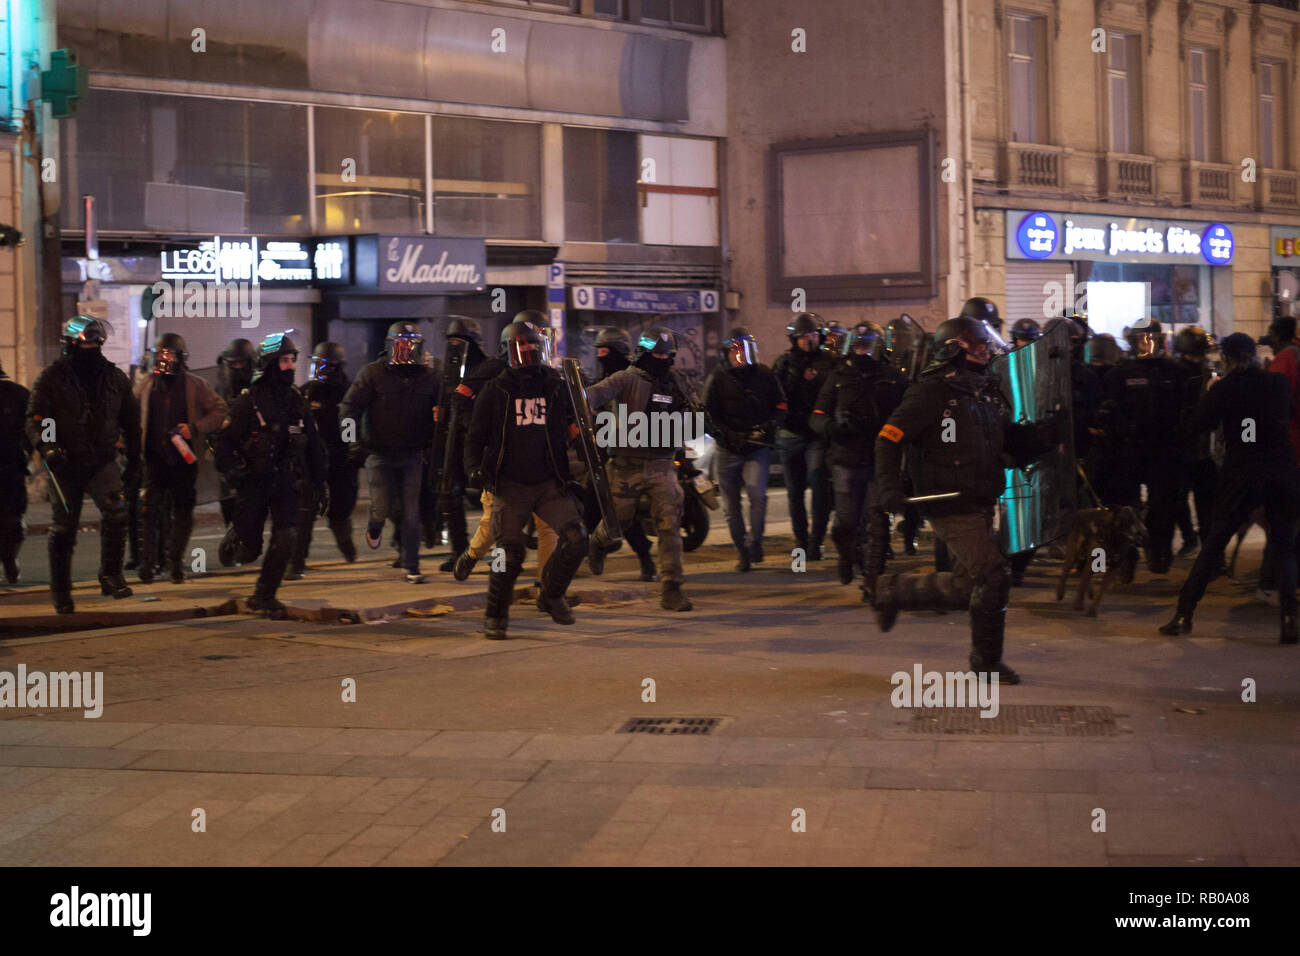 Paris, France. 5th Jan, 2019. Demonstration of Yellow Vests in Paris on January 5, 2019 Credit: Yann Bohac/ZUMA Wire/Alamy Live News - Stock Image